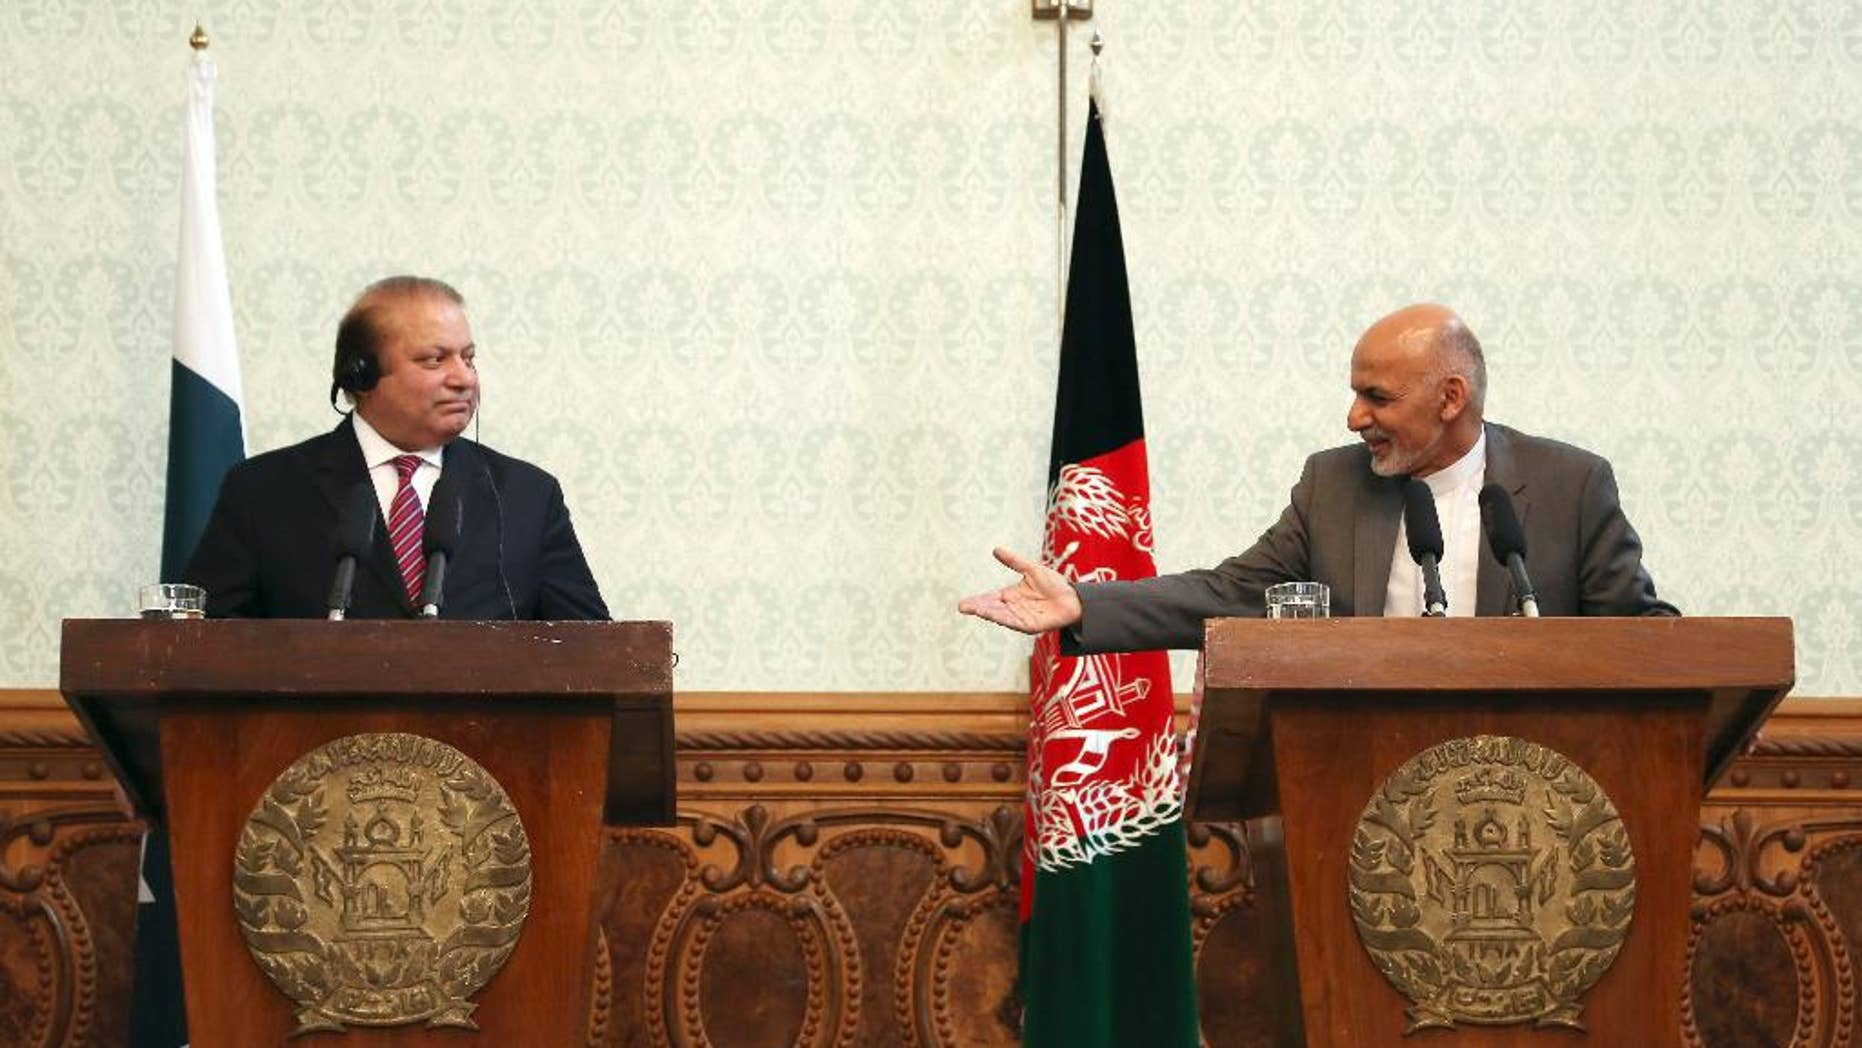 FILE - In a May 12, 2015 file photo, Afghan President Ashraf Ghani, right, speaks as Pakistani Prime Minister Nawaz Sharif listens during a joint press conference at the presidential palace in Kabul, Afghanistan. Pakistan said Wednesday, July 8, 2015, that the first official face-to-face discussions between Afghan government officials and the Taliban have made progress, with the two sides agreeing at a meeting near Islamabad to work on confidence-building measures and hold more such talks after the Muslim holy month of Ramadan. (AP Photo/Rahmat Gul, File)